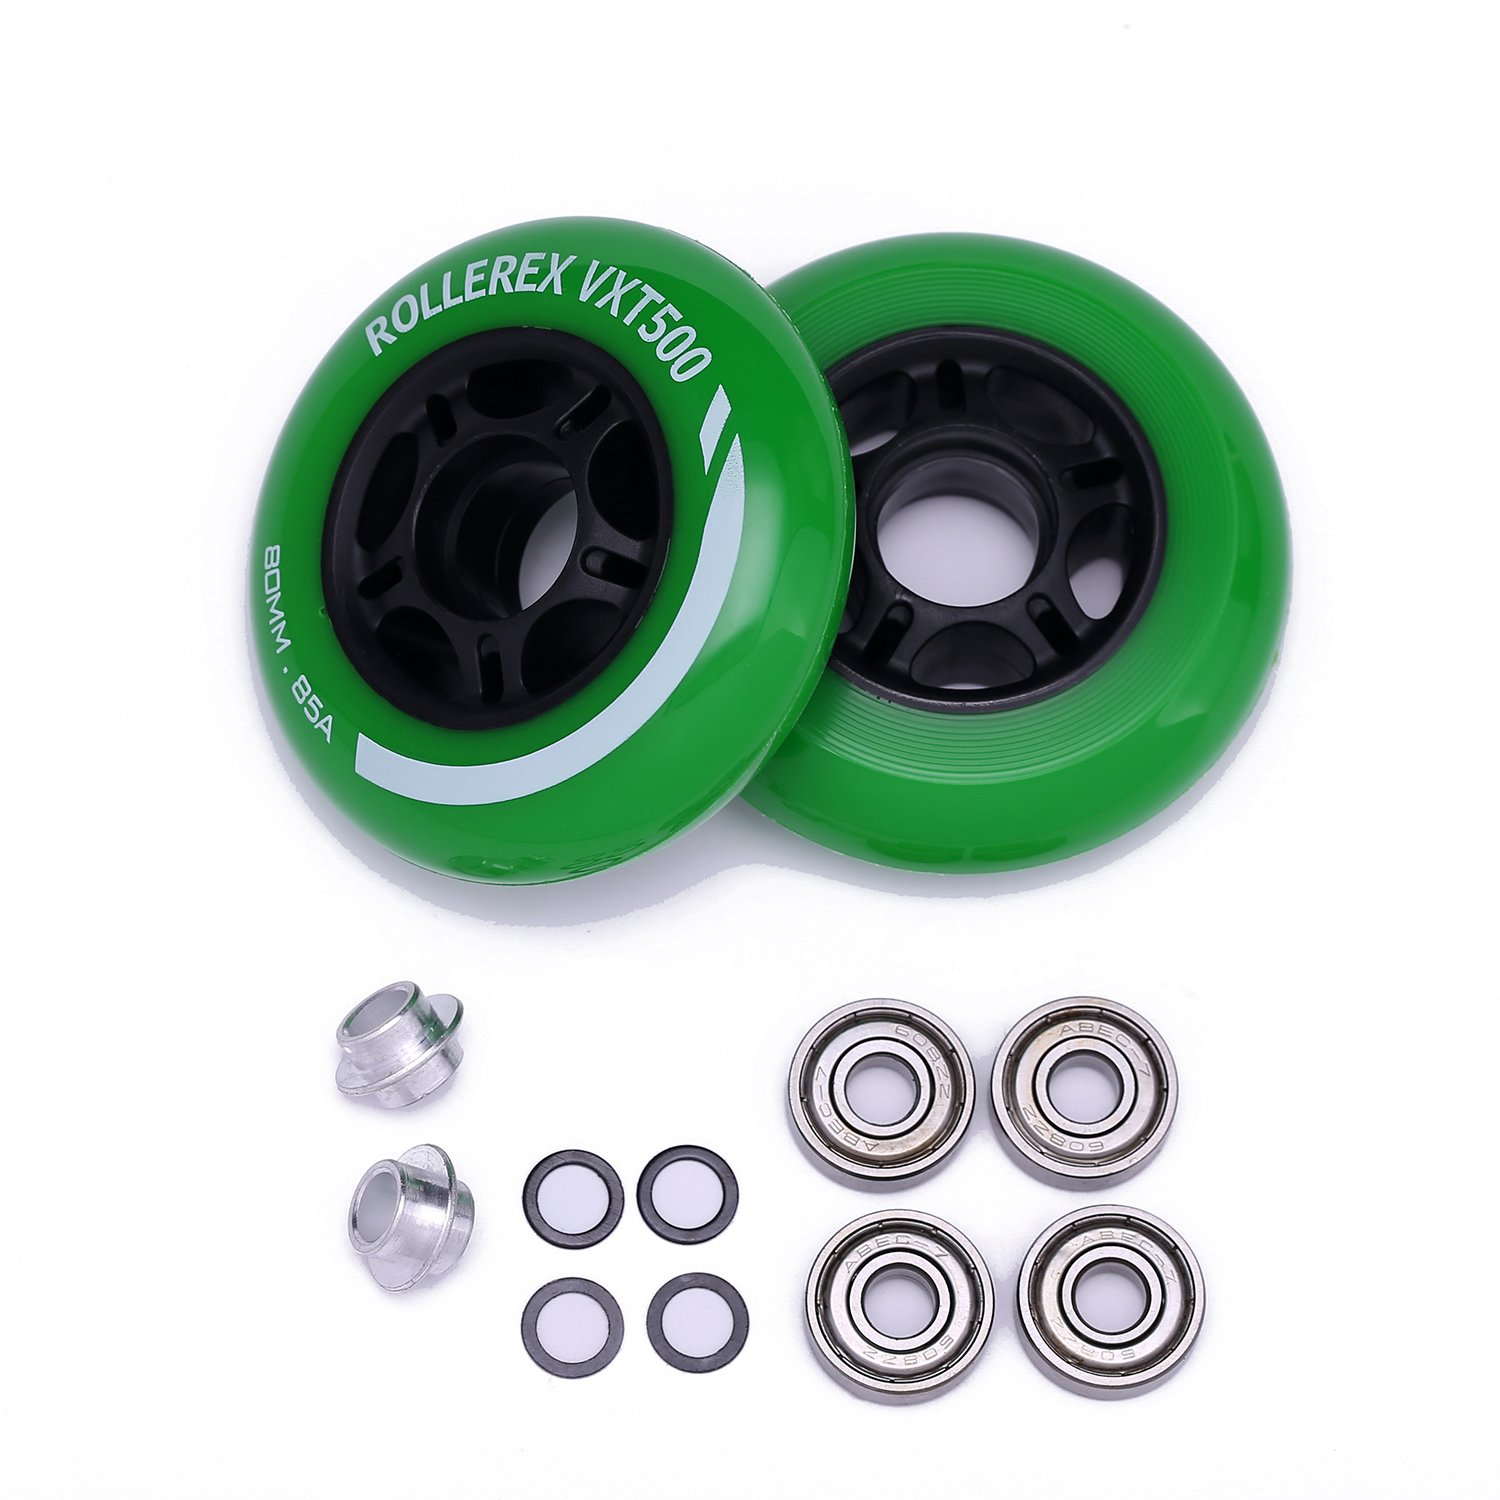 Rollerex VXT500 Inline Skate Wheels (2-Pack w/Bearings, spacers and washers) (Turf Green, 80mm) by Rollerex